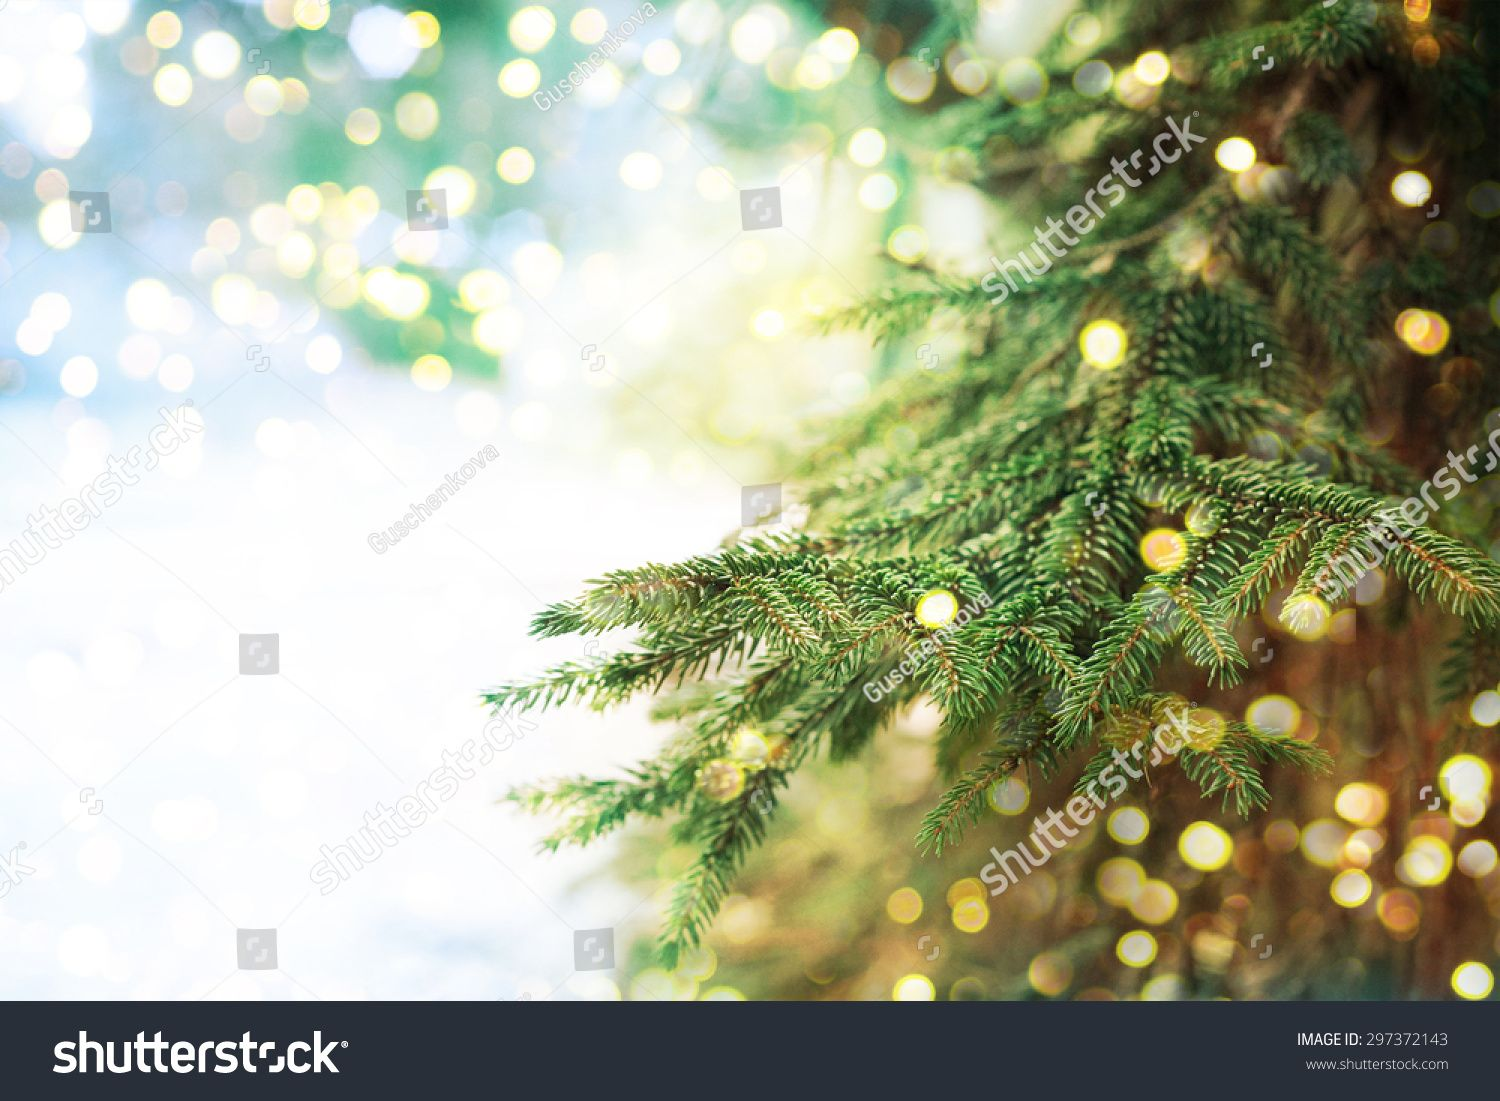 Image result for christmas evergreen background images